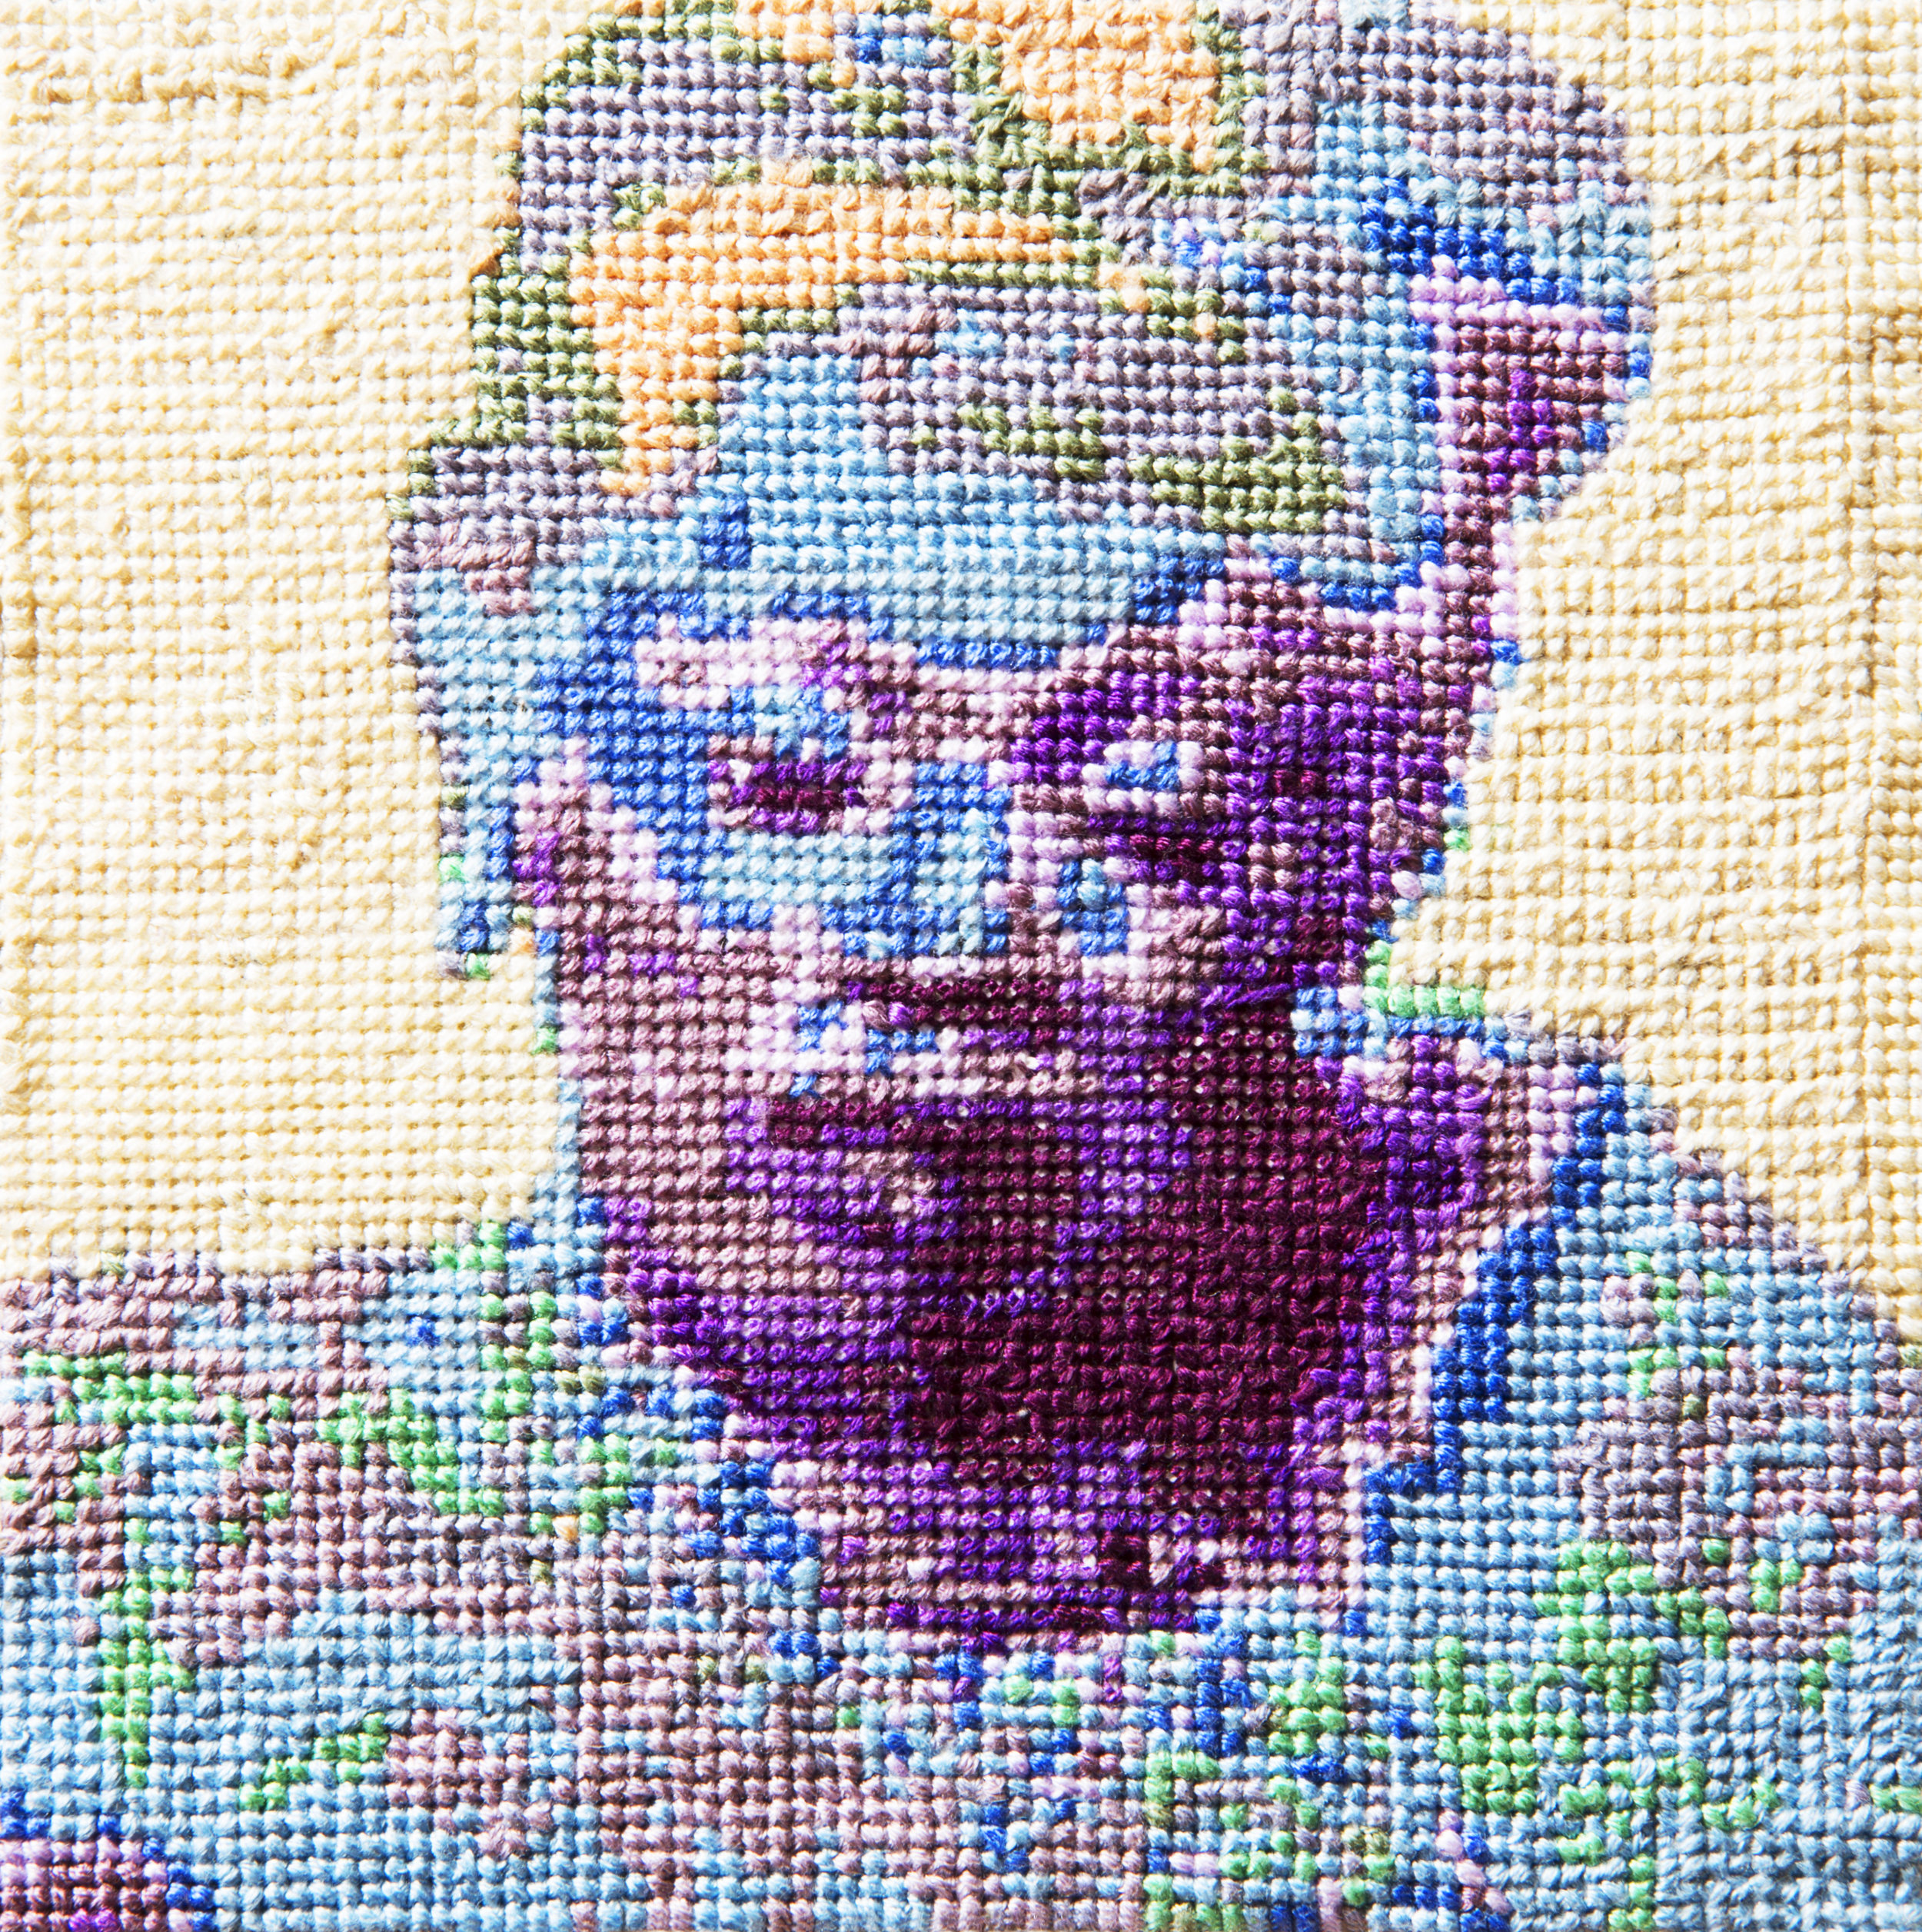 Frame 09   By Andre Keichian  Cotton thread on aida cloth  5 x 5 inches  2013